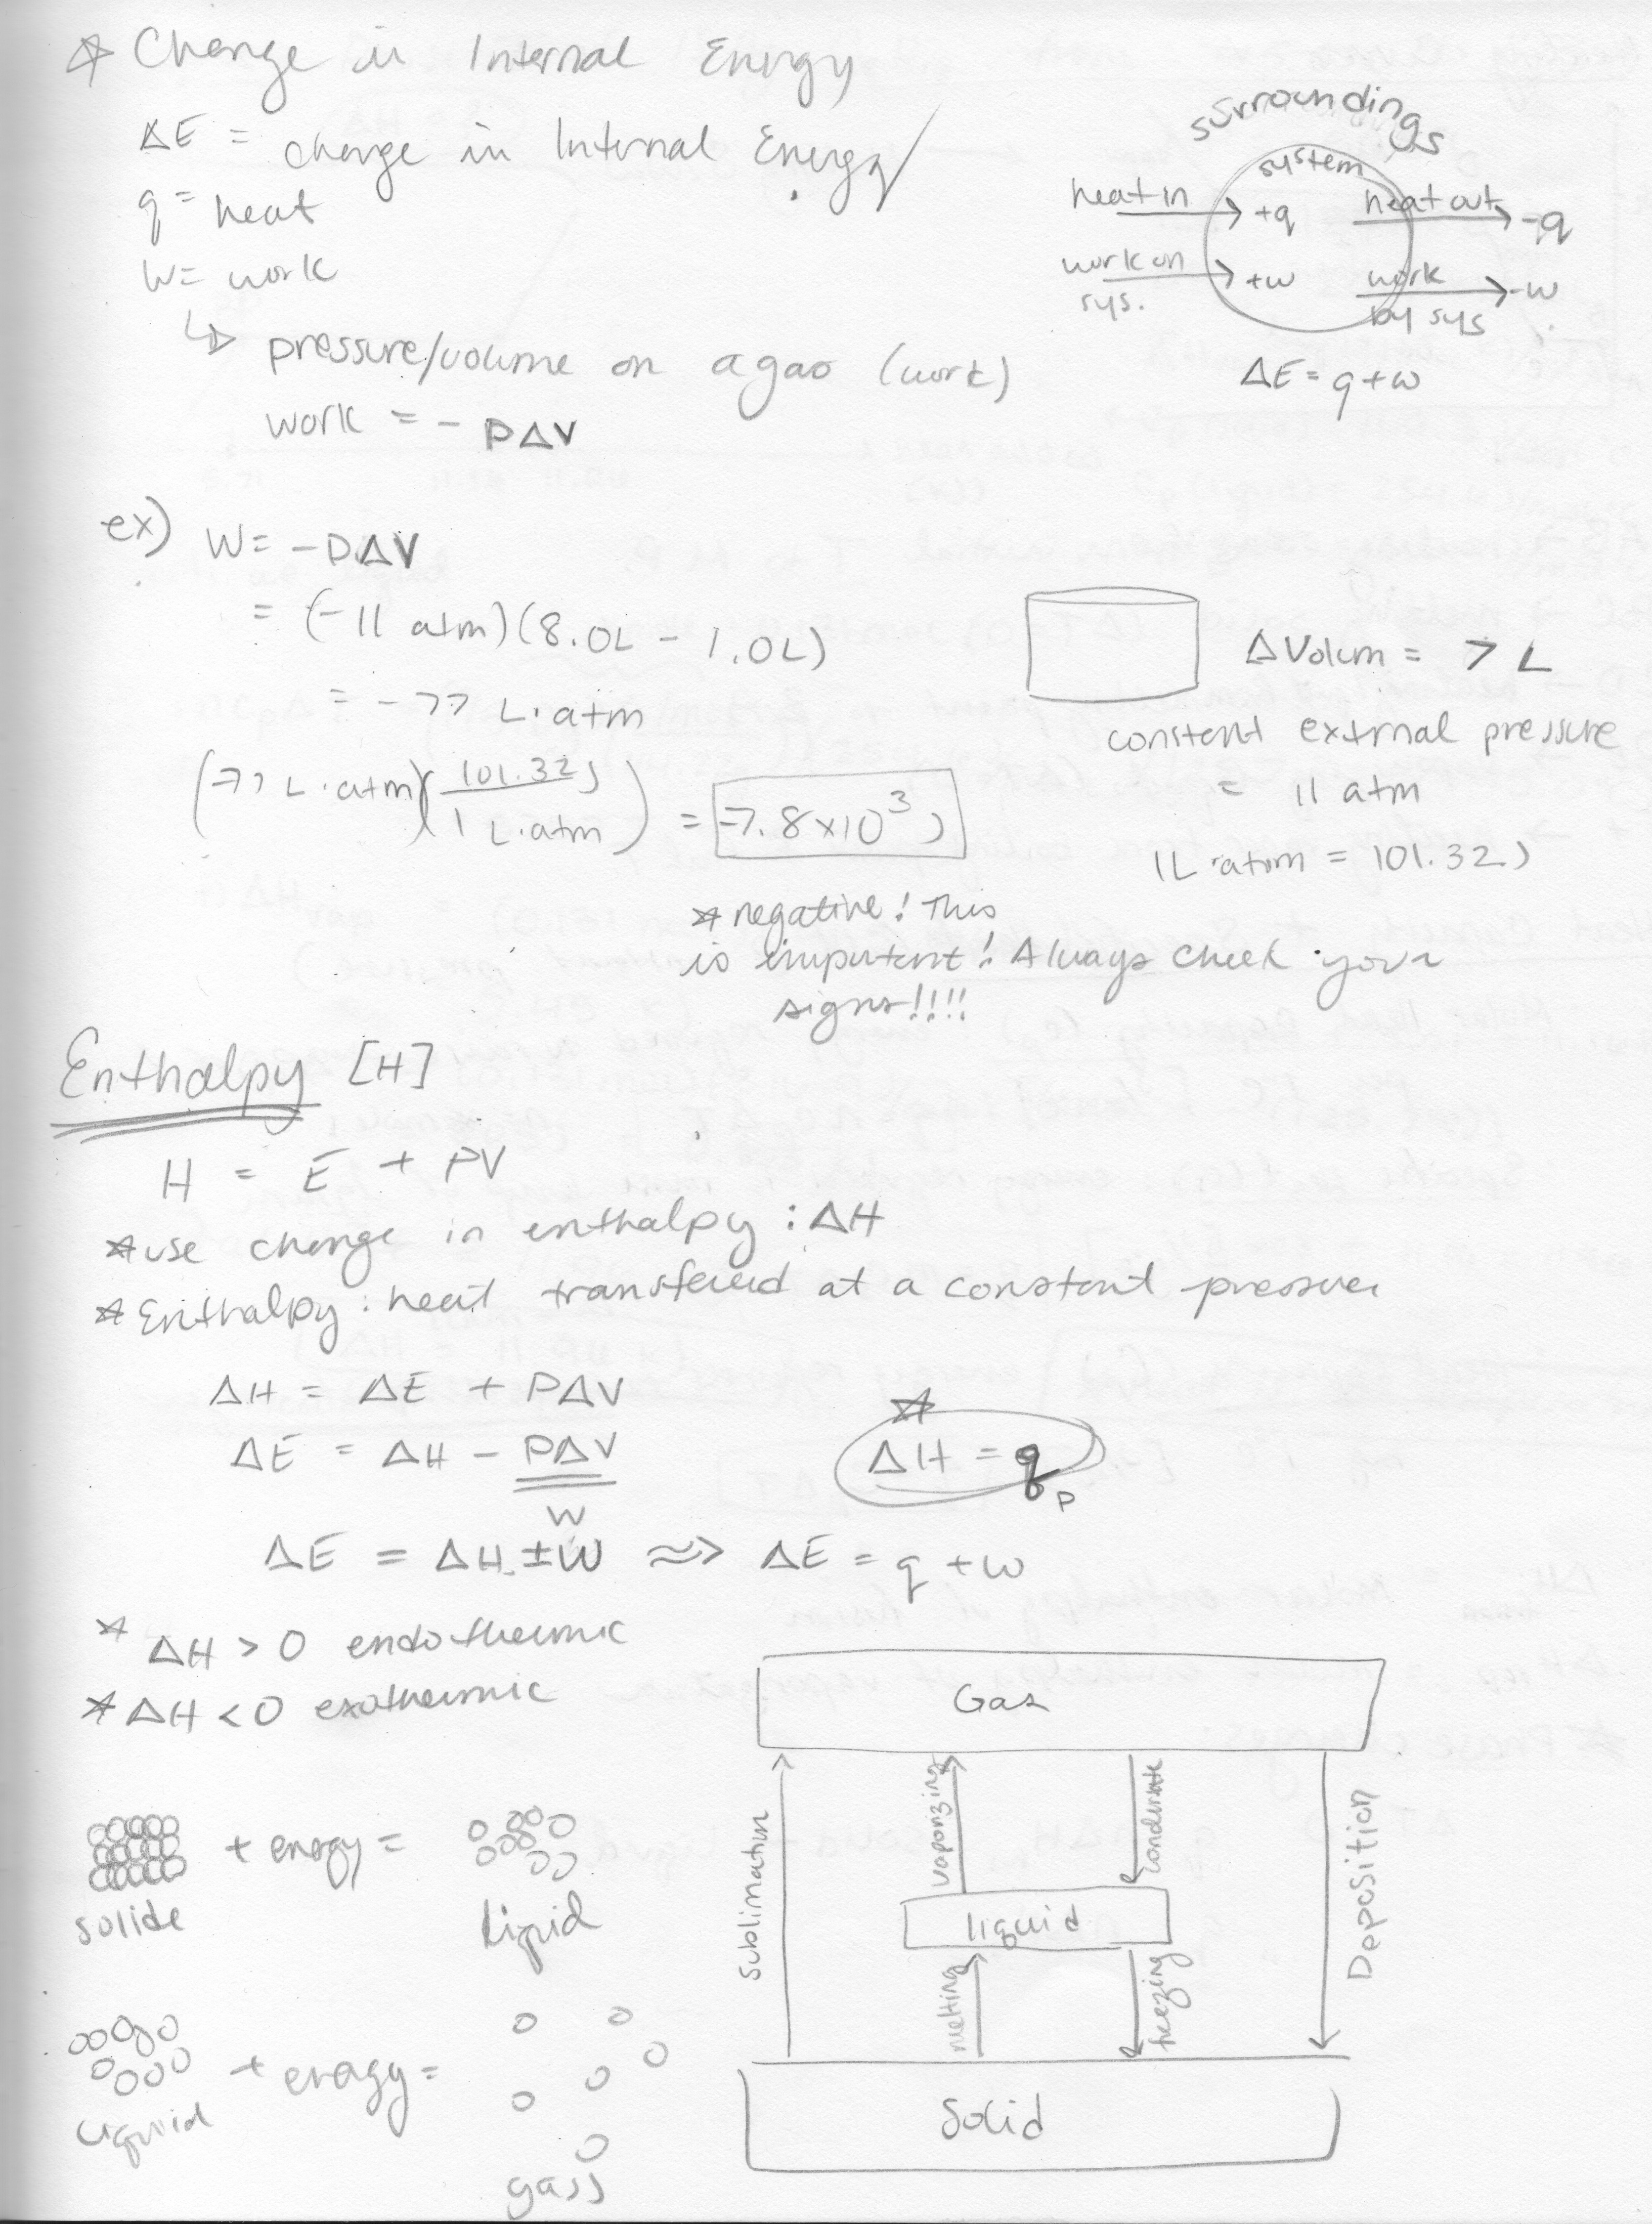 Sci 030 - Class Notes